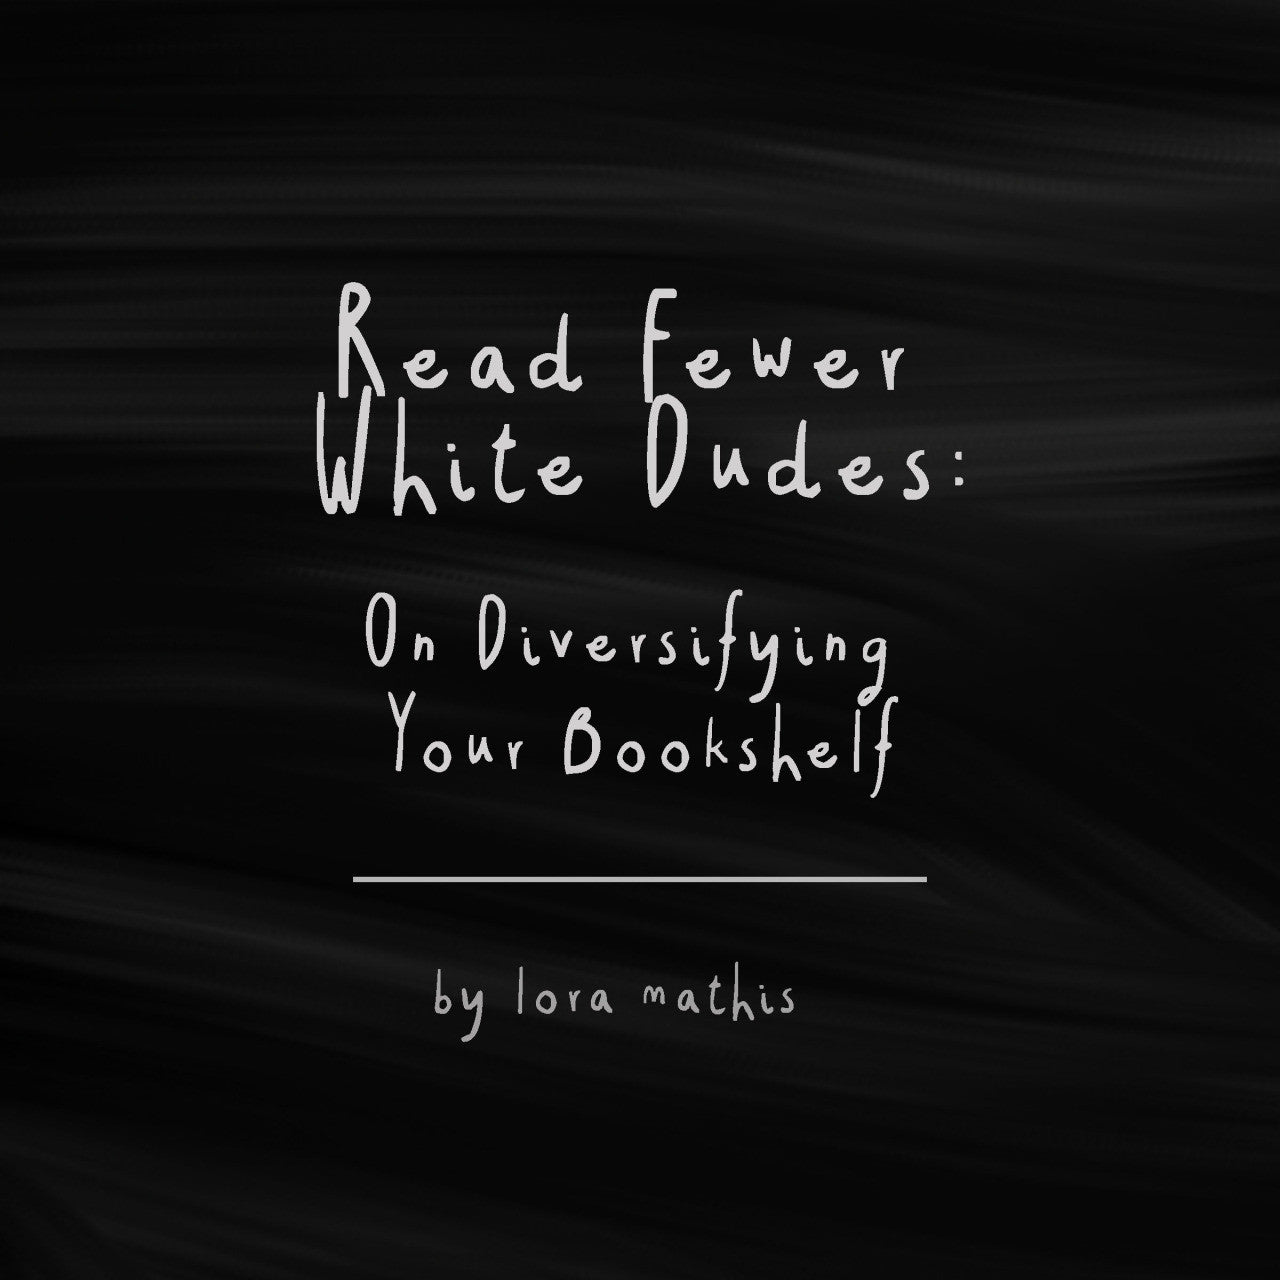 Read Fewer White Dudes: On Diversifying Your Bookshelf by Lora Mathis